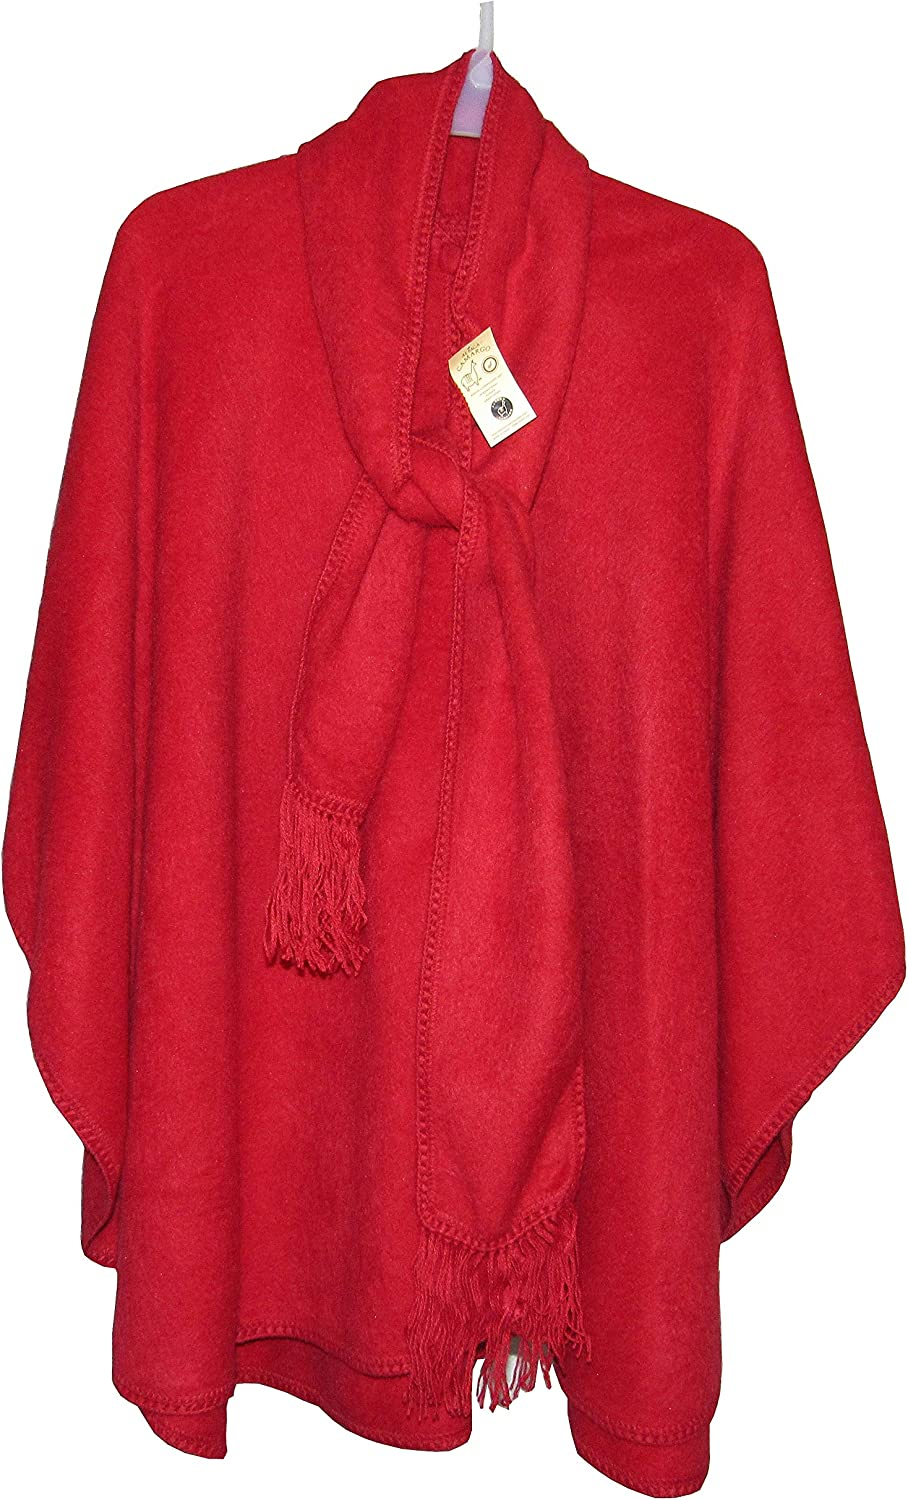 ALPACA PONCHO FOR WOMEN, GENUINE CAMARGO CAPE, SHAWL AND WRAPS 905003